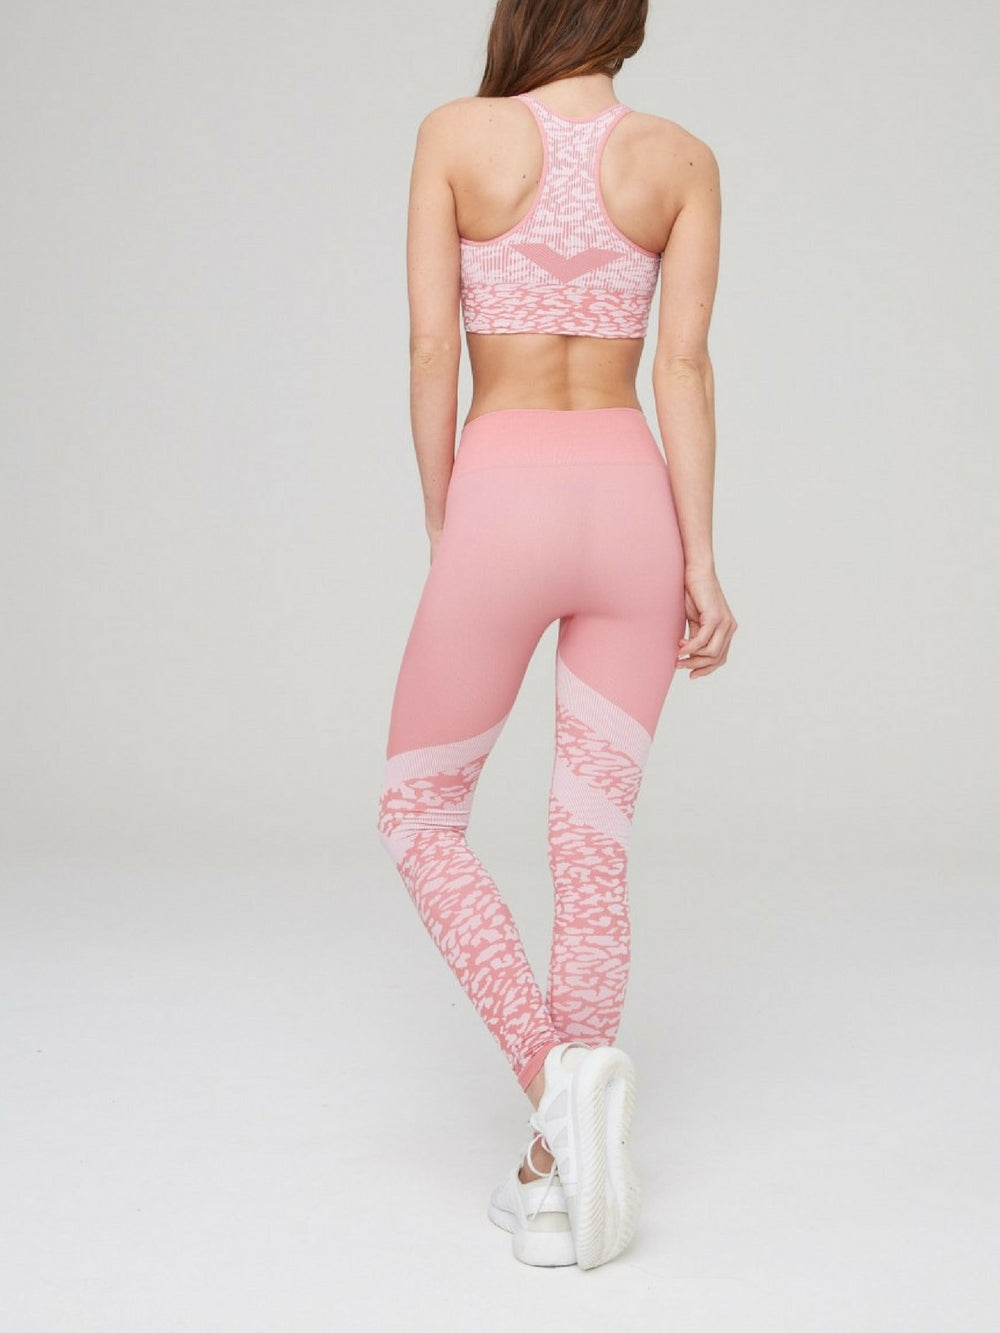 varley-emerson-leggings-pink-orchid-leopard